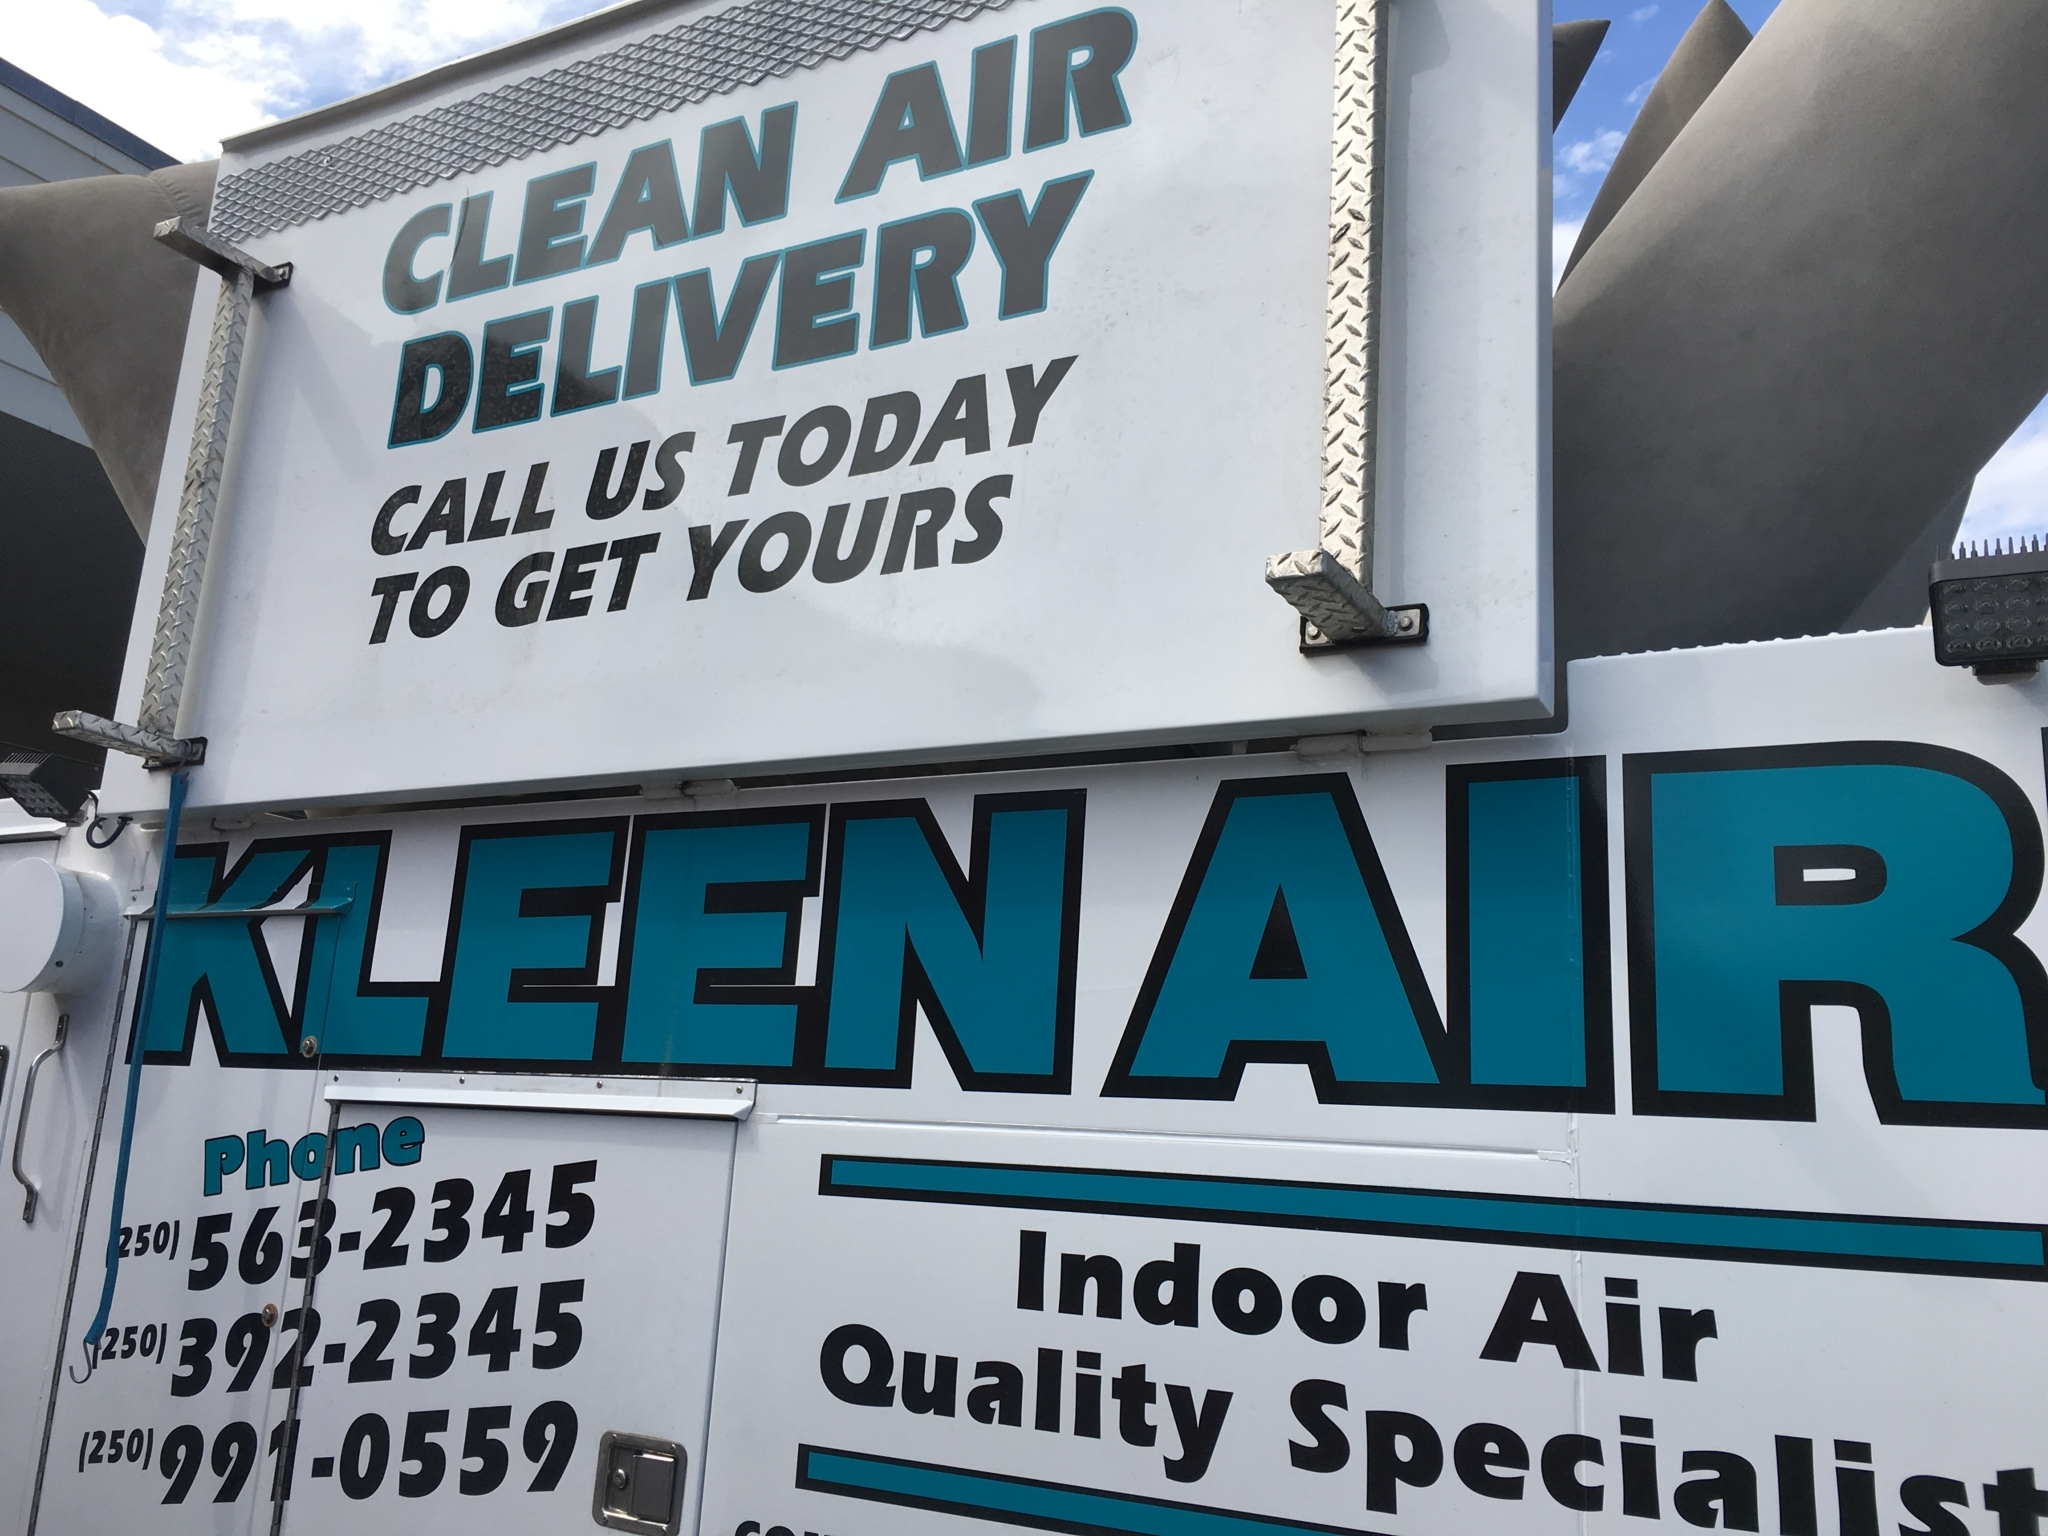 Kleen Aire Services in Williams Lake: Clean Air Delivery